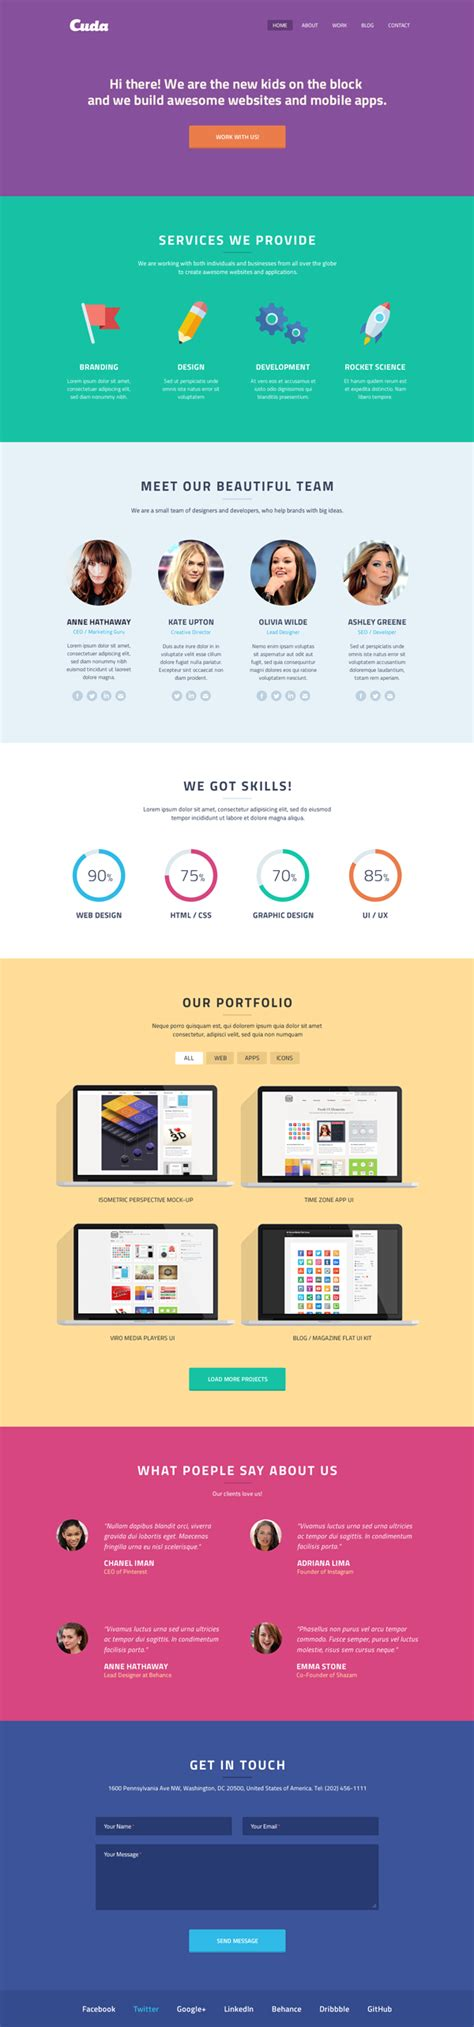 25 Trendy New Landing Page Single Page Website App Psd Templates For Free Download 365 Web Single Page Website Template Free